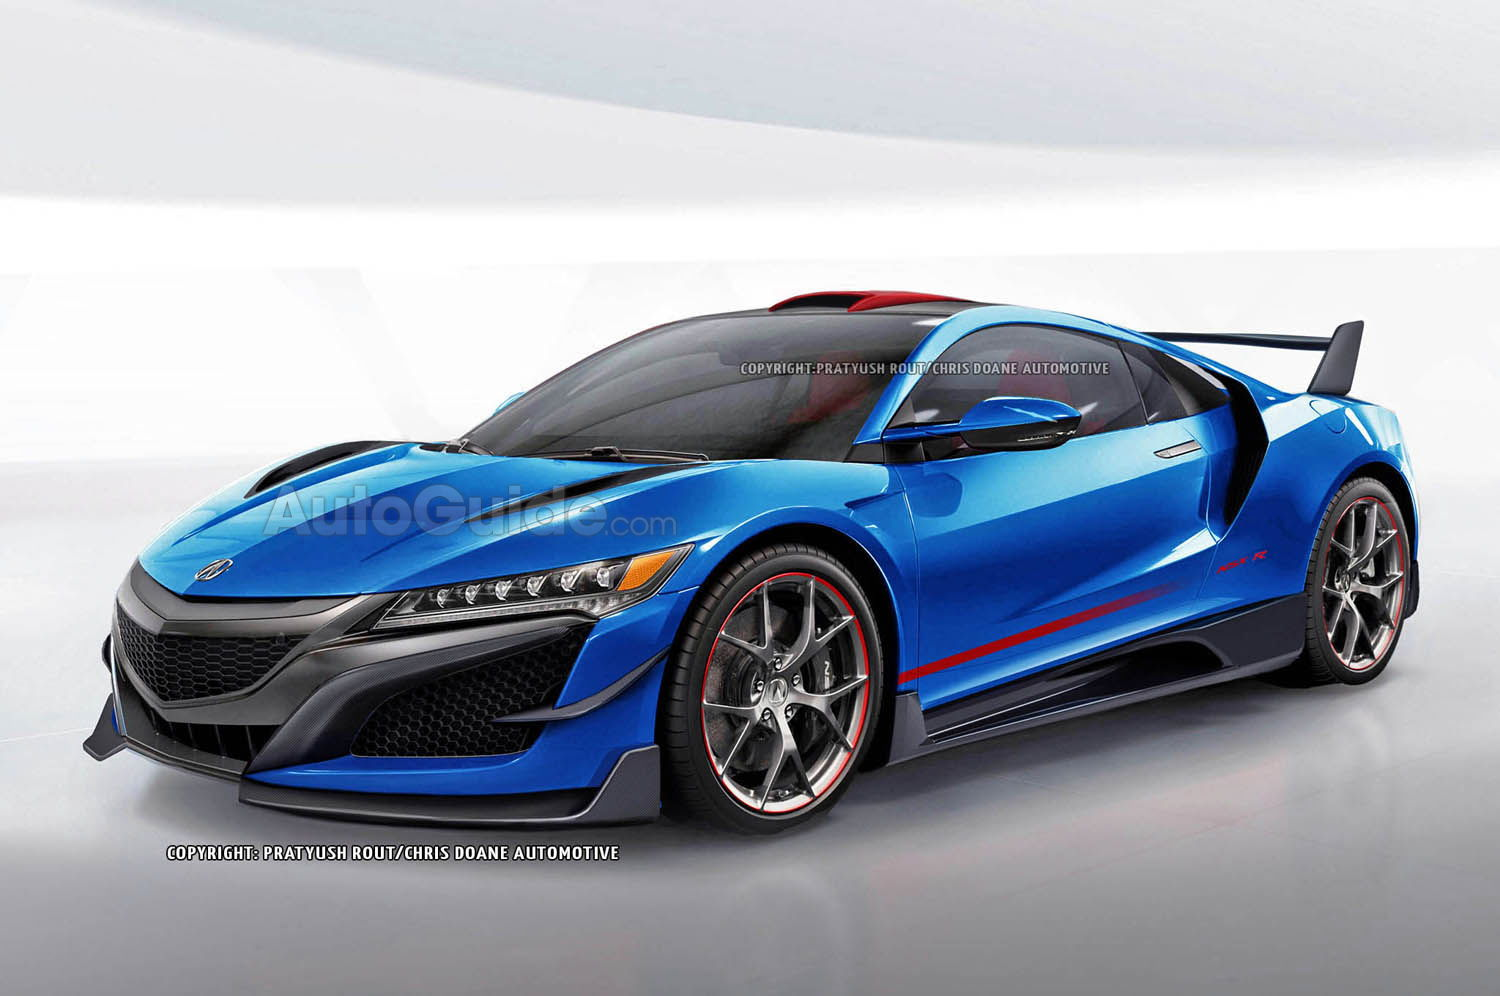 More Extreme Acura Nsx Coming In 2018 Acurazine Acura